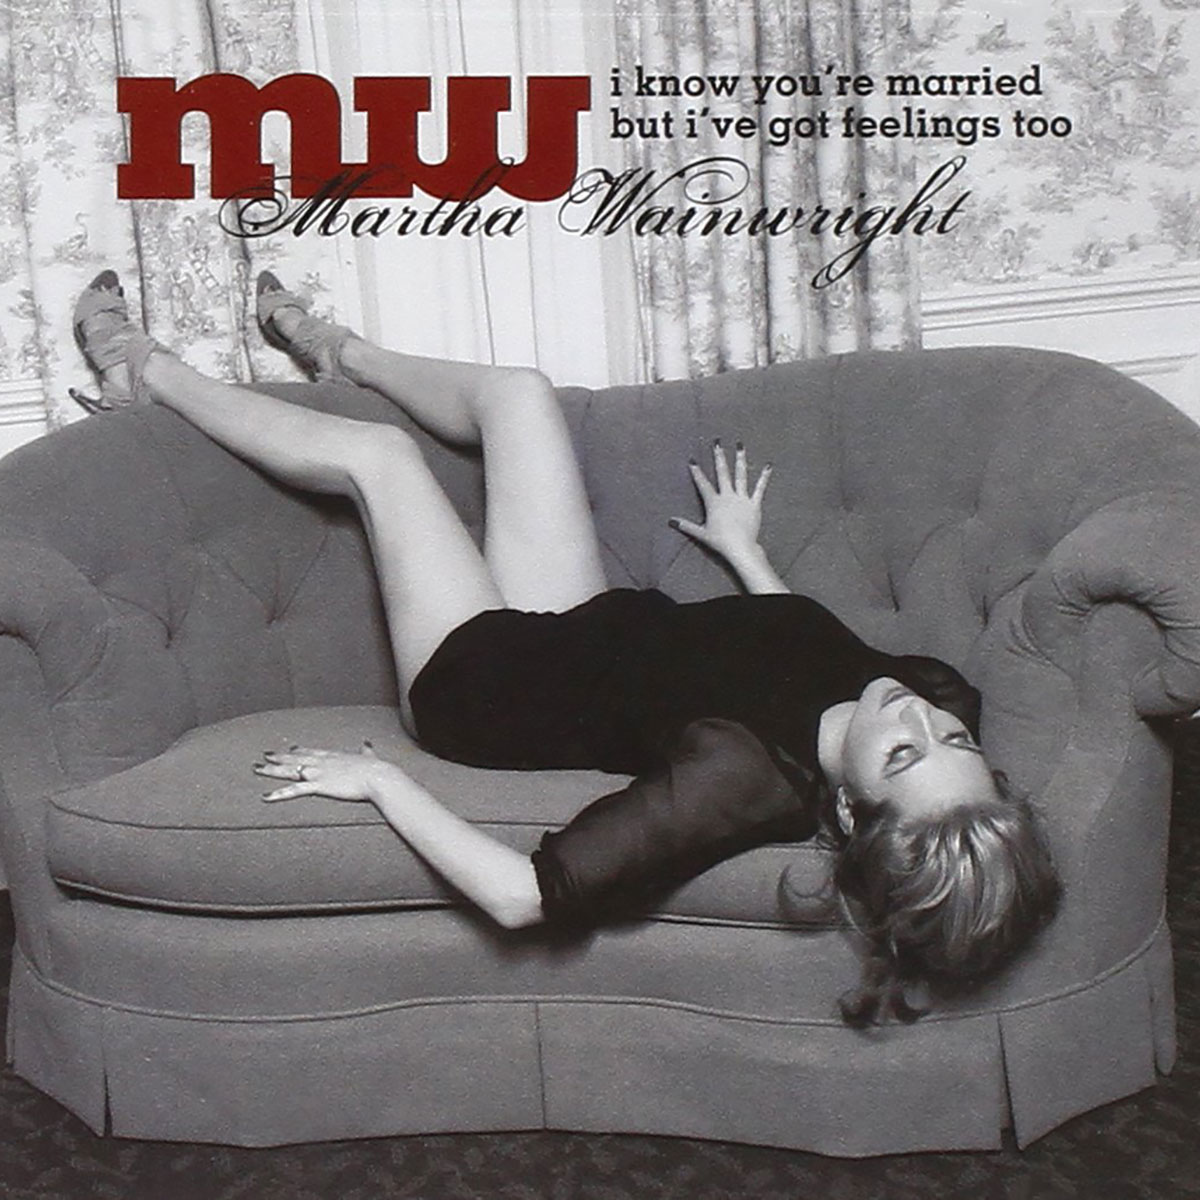 Martha Wainwright, I Know You're Married But I've Got Feelings Too